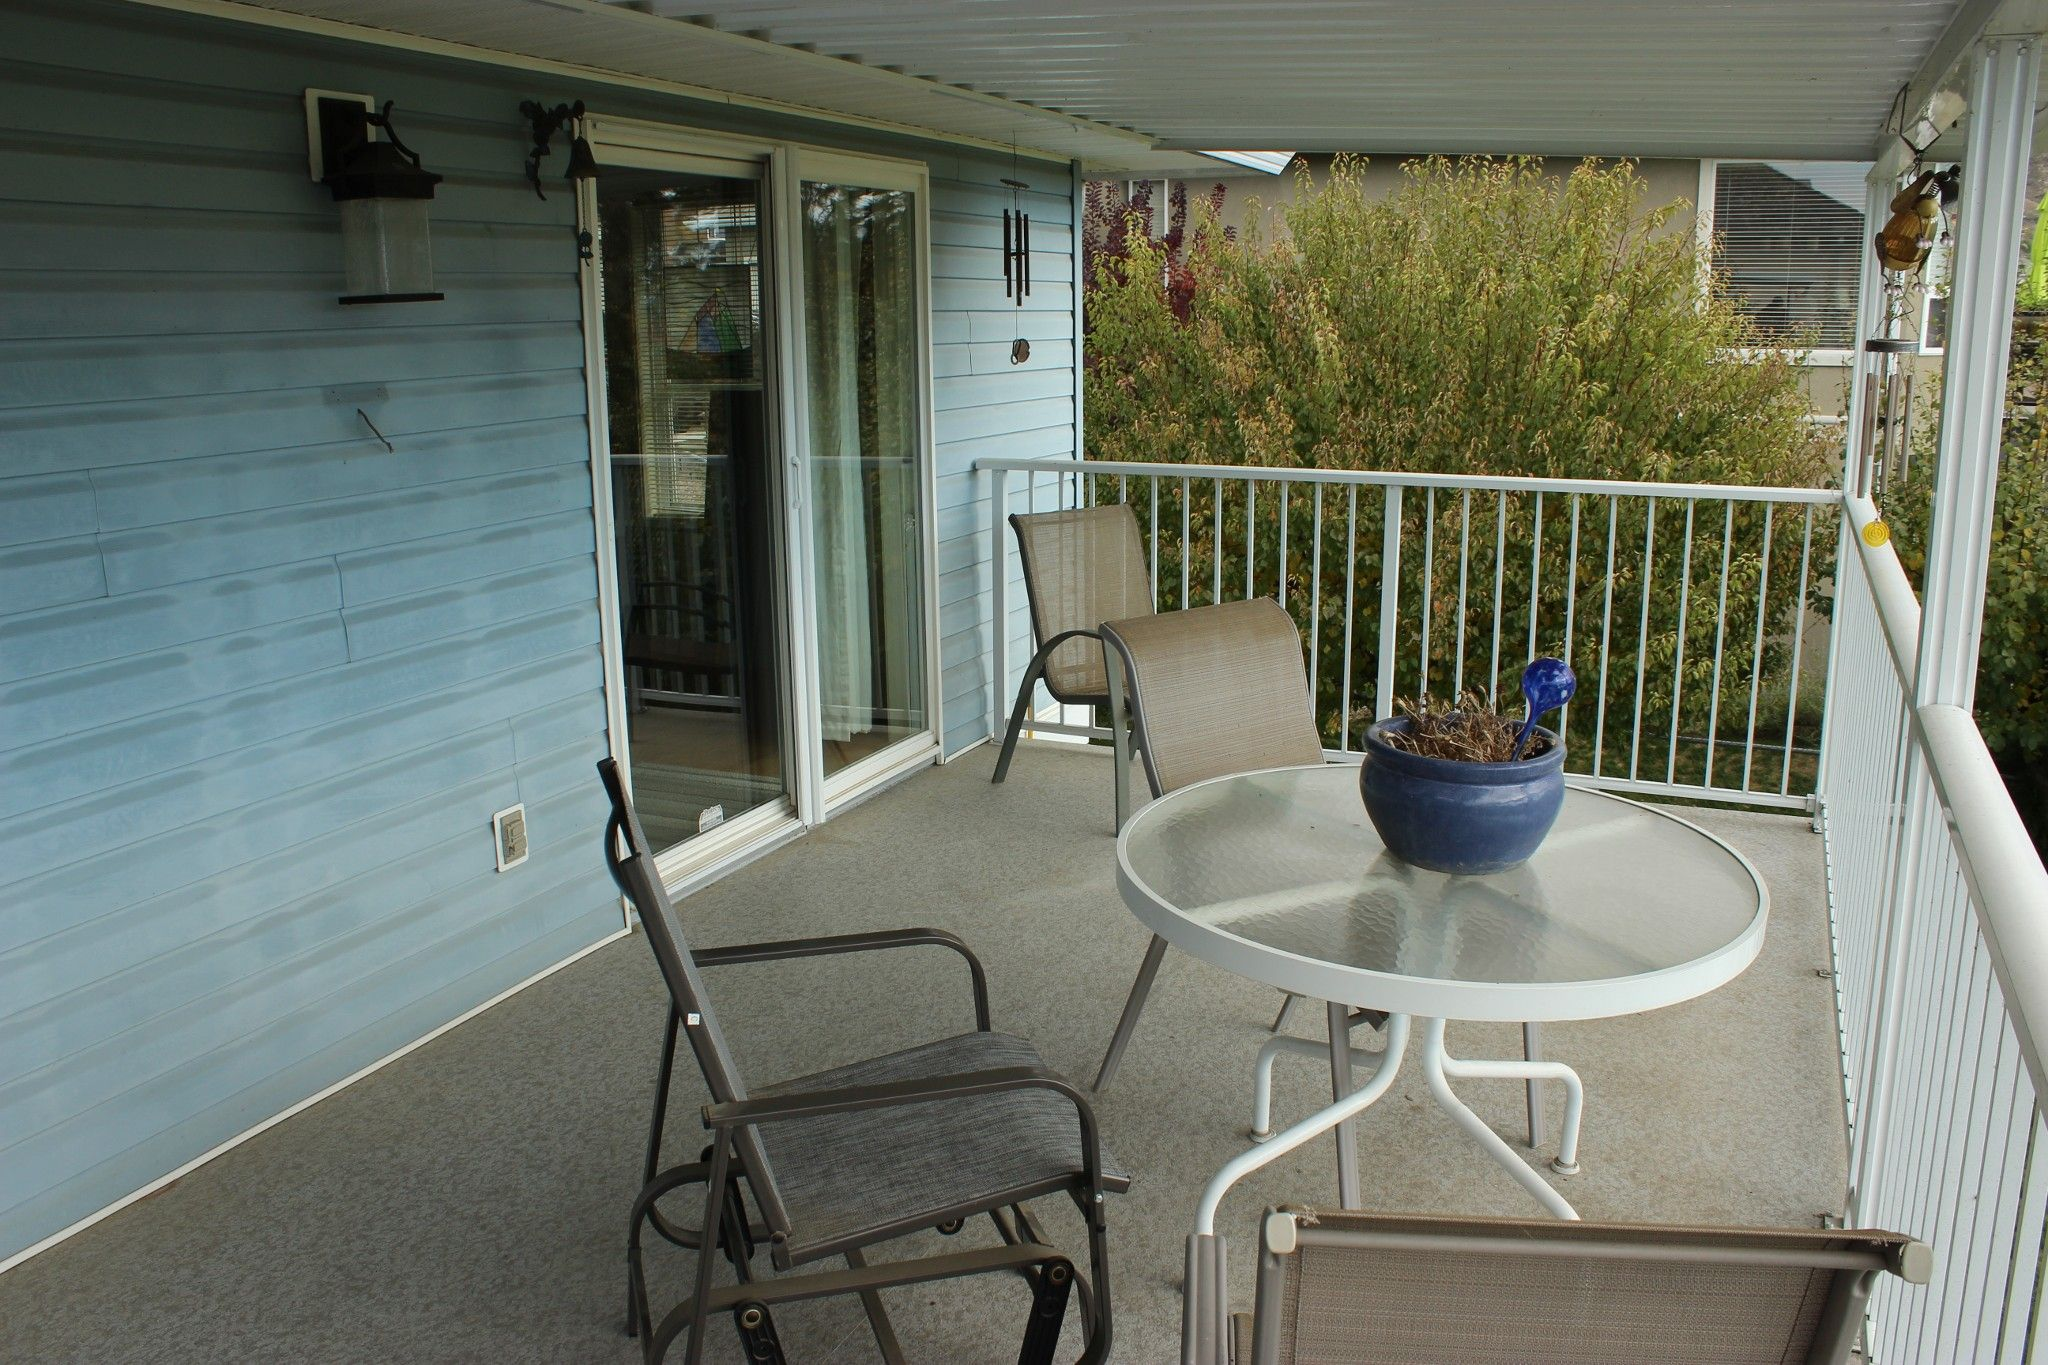 Photo 16: Photos: 3480 Navatanee Drive in Kamloops: South Thompson Valley House for sale : MLS®# 148627